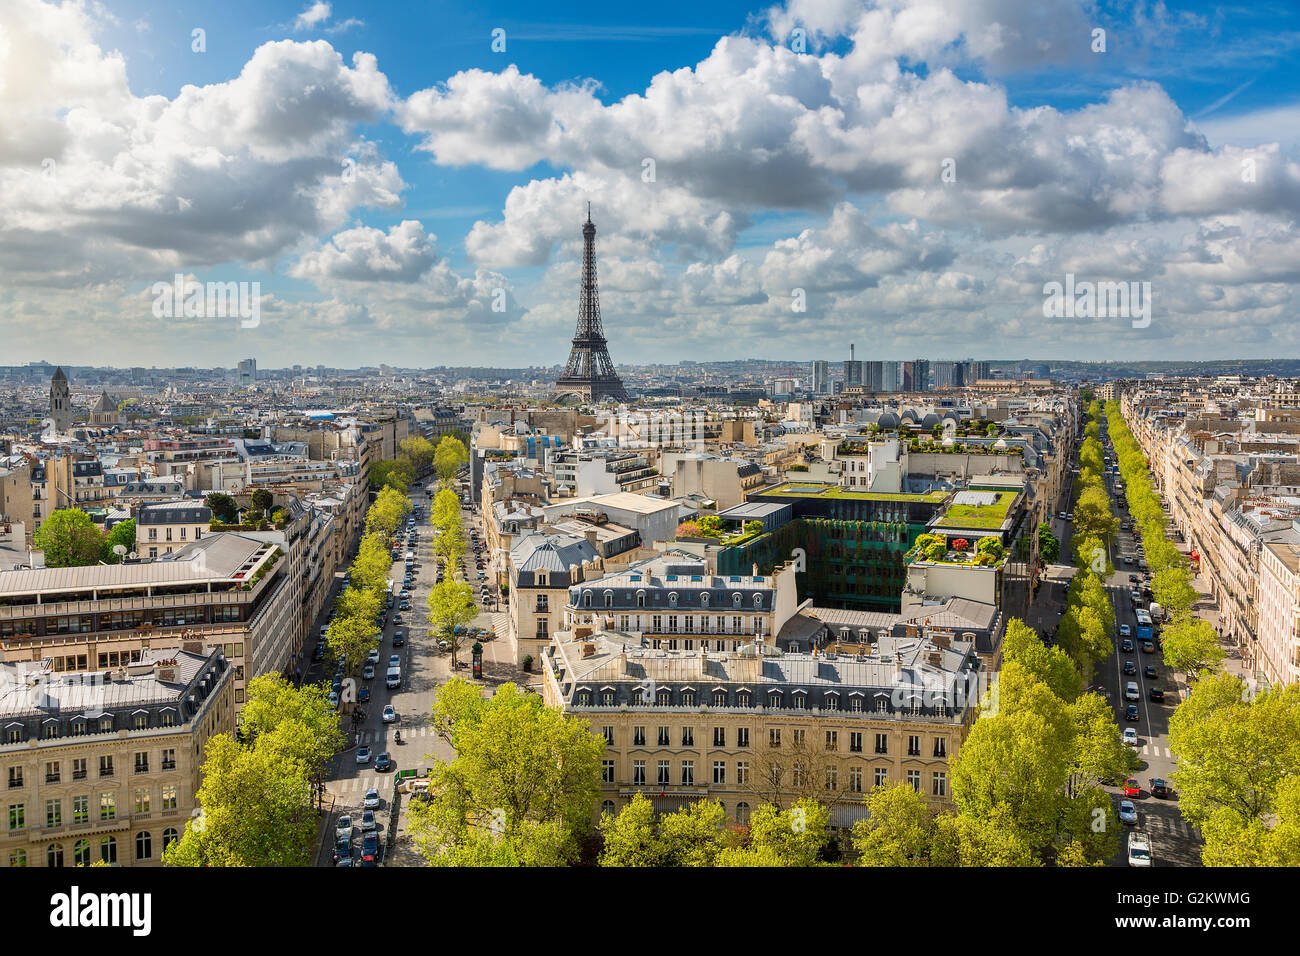 Skyline of Paris with Eiffel Tower - Stock Image